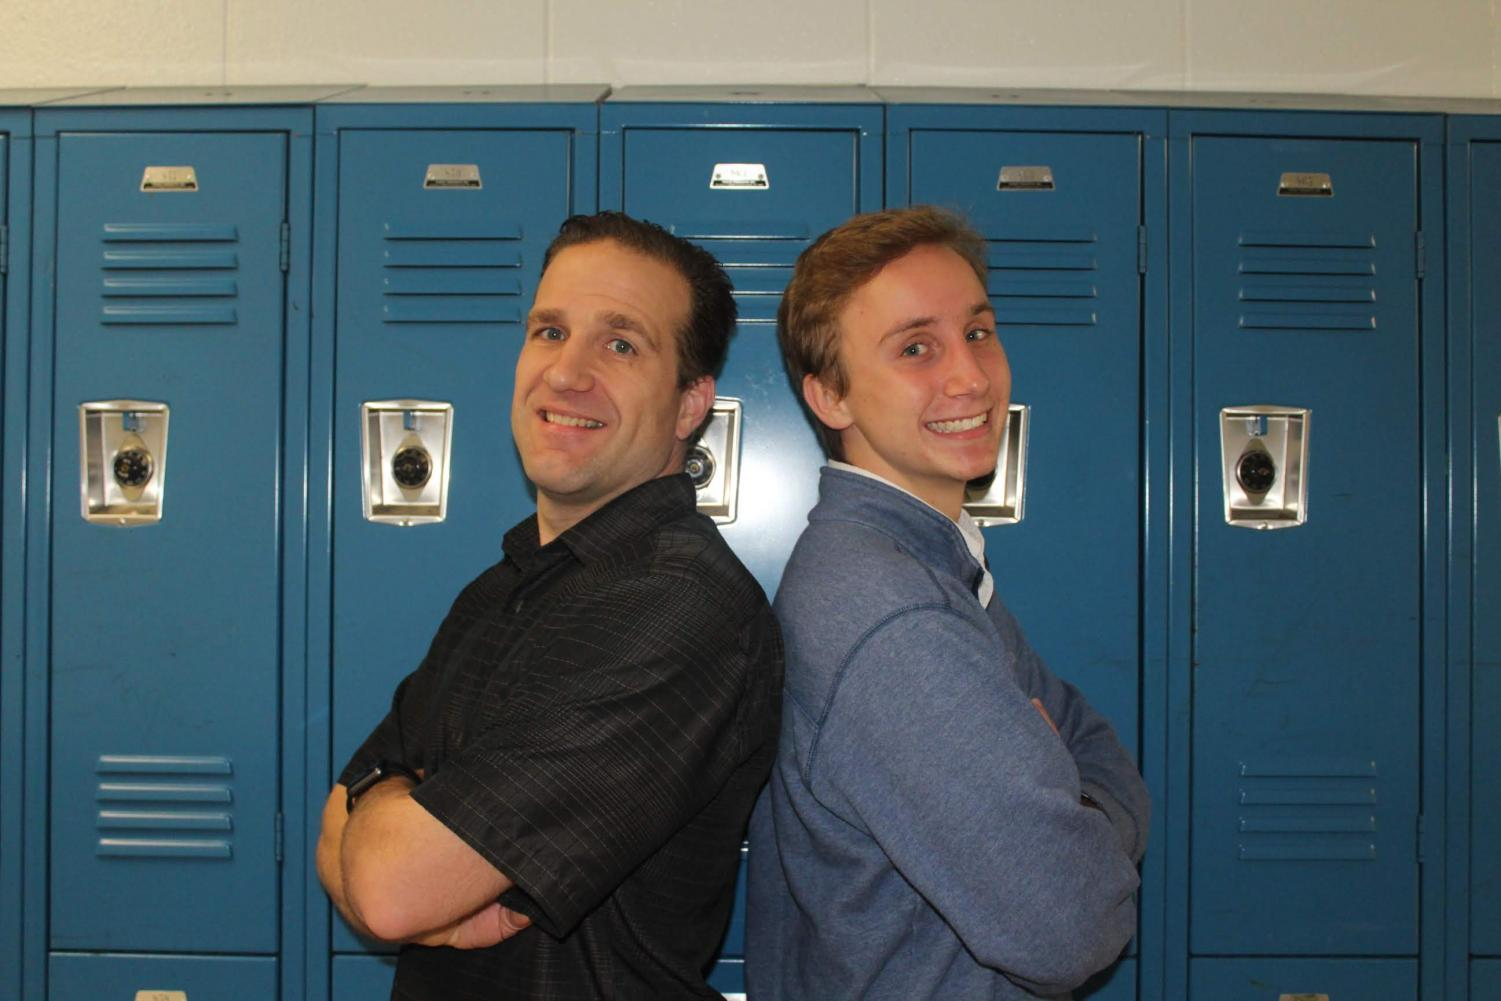 Junior Will Giles stands back-to-back in the hallways with Mr. Andrew Oberlies. The two were look-alikes because of their facial shape and eyes.